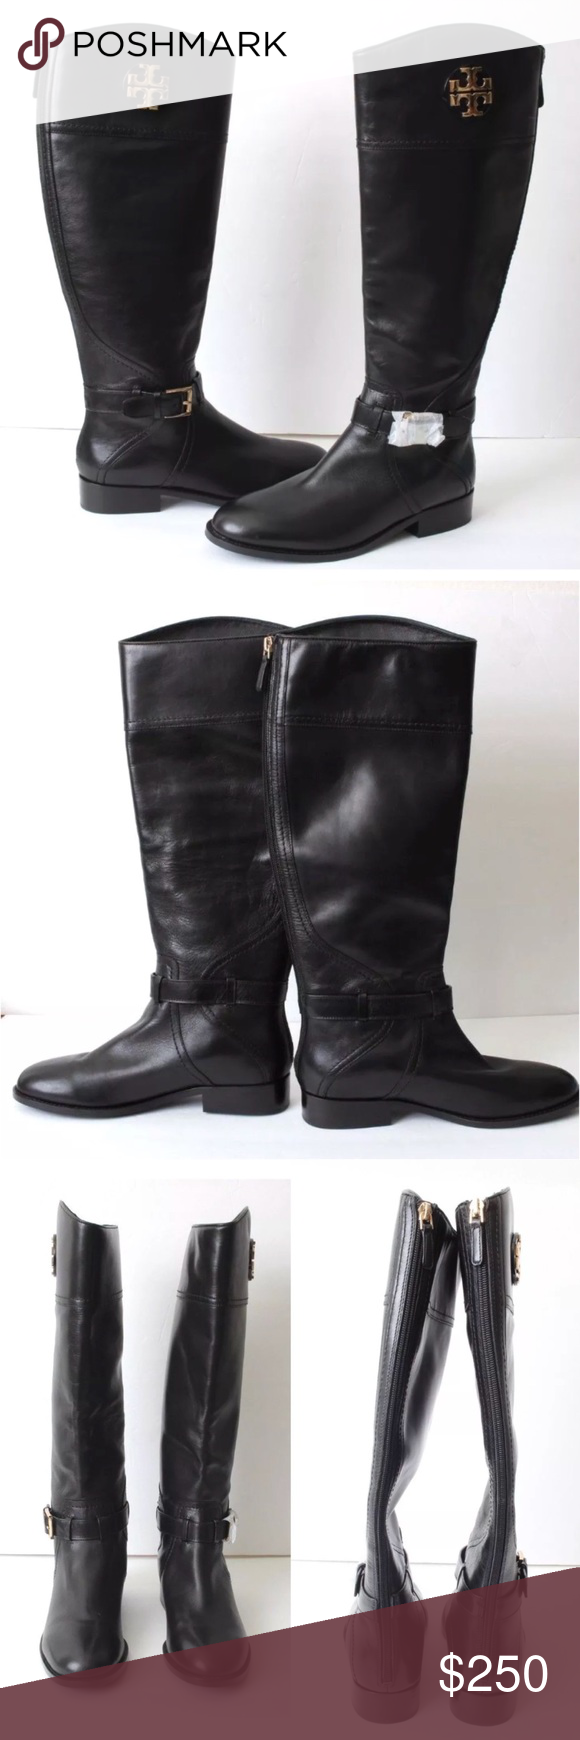 741e7252775 Tory Burch Adeline Black Riding Boots Brand new without original box A gleaming  logo medallion adds